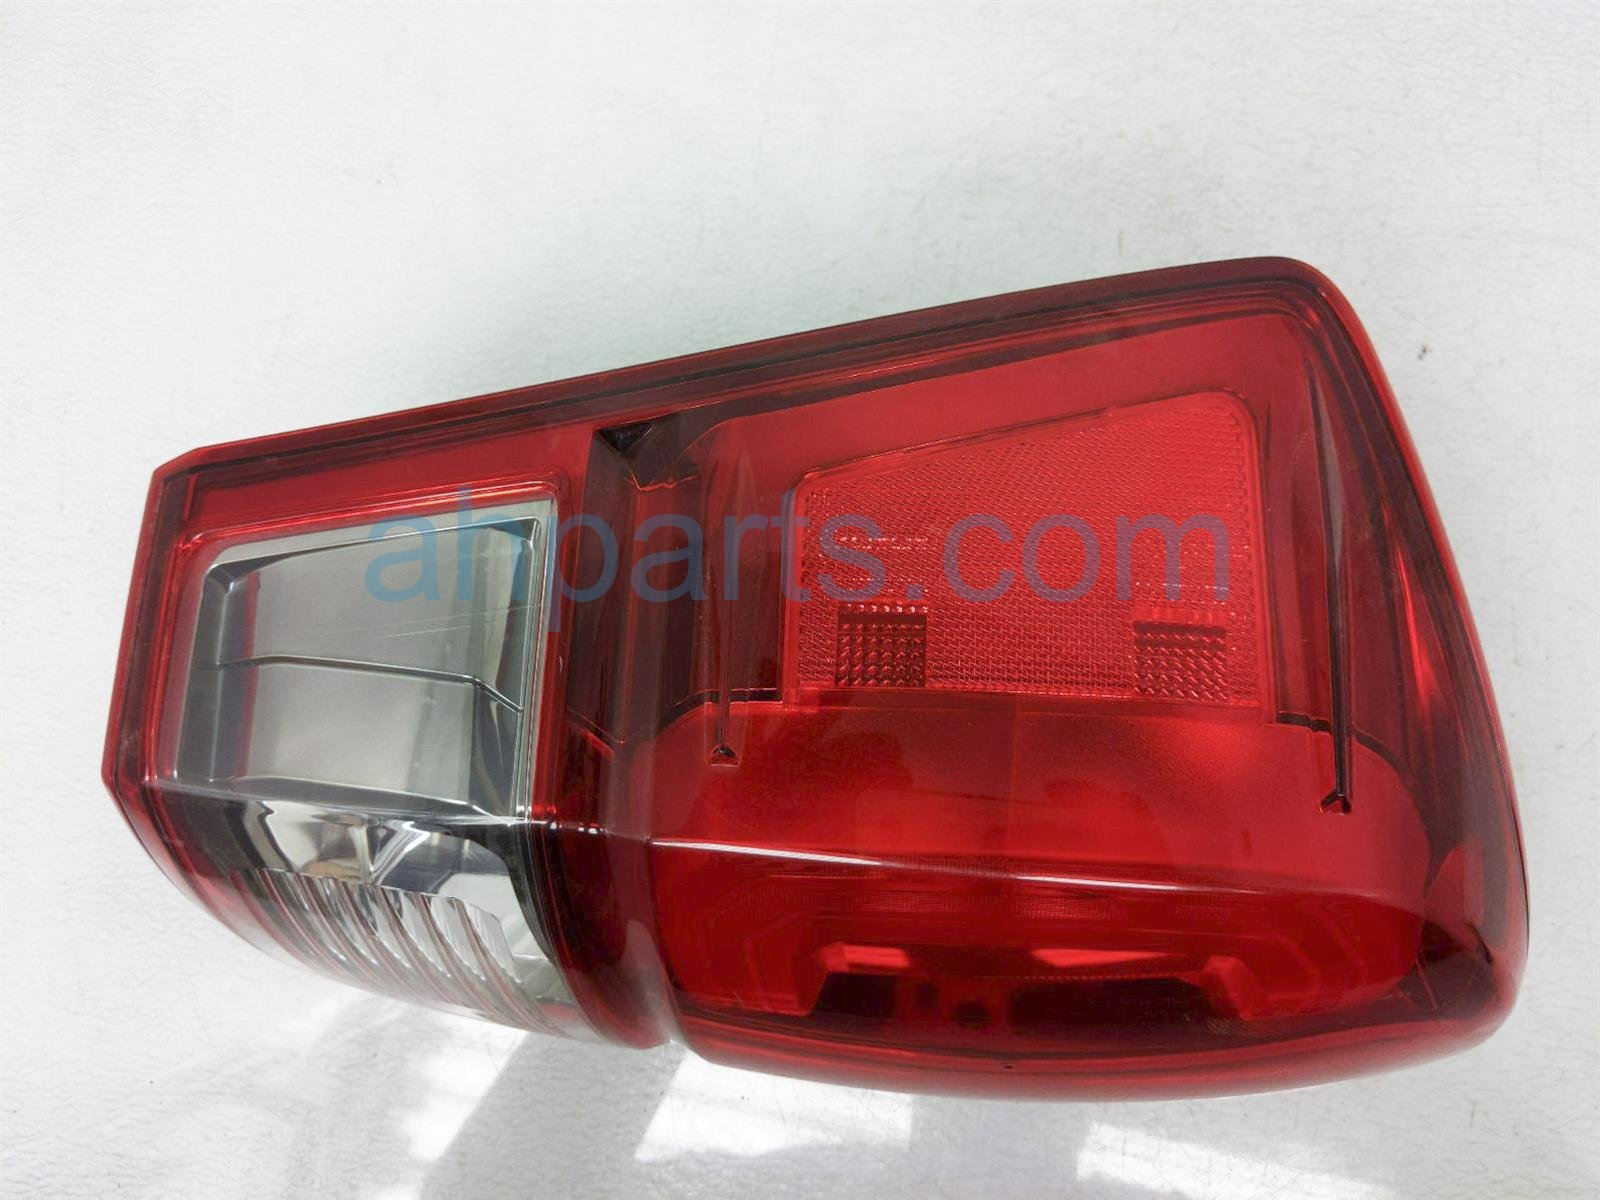 2017 Toyota Tacoma Light / Rear Driver Tail Lamp (on Body) 81560 04170 Replacement